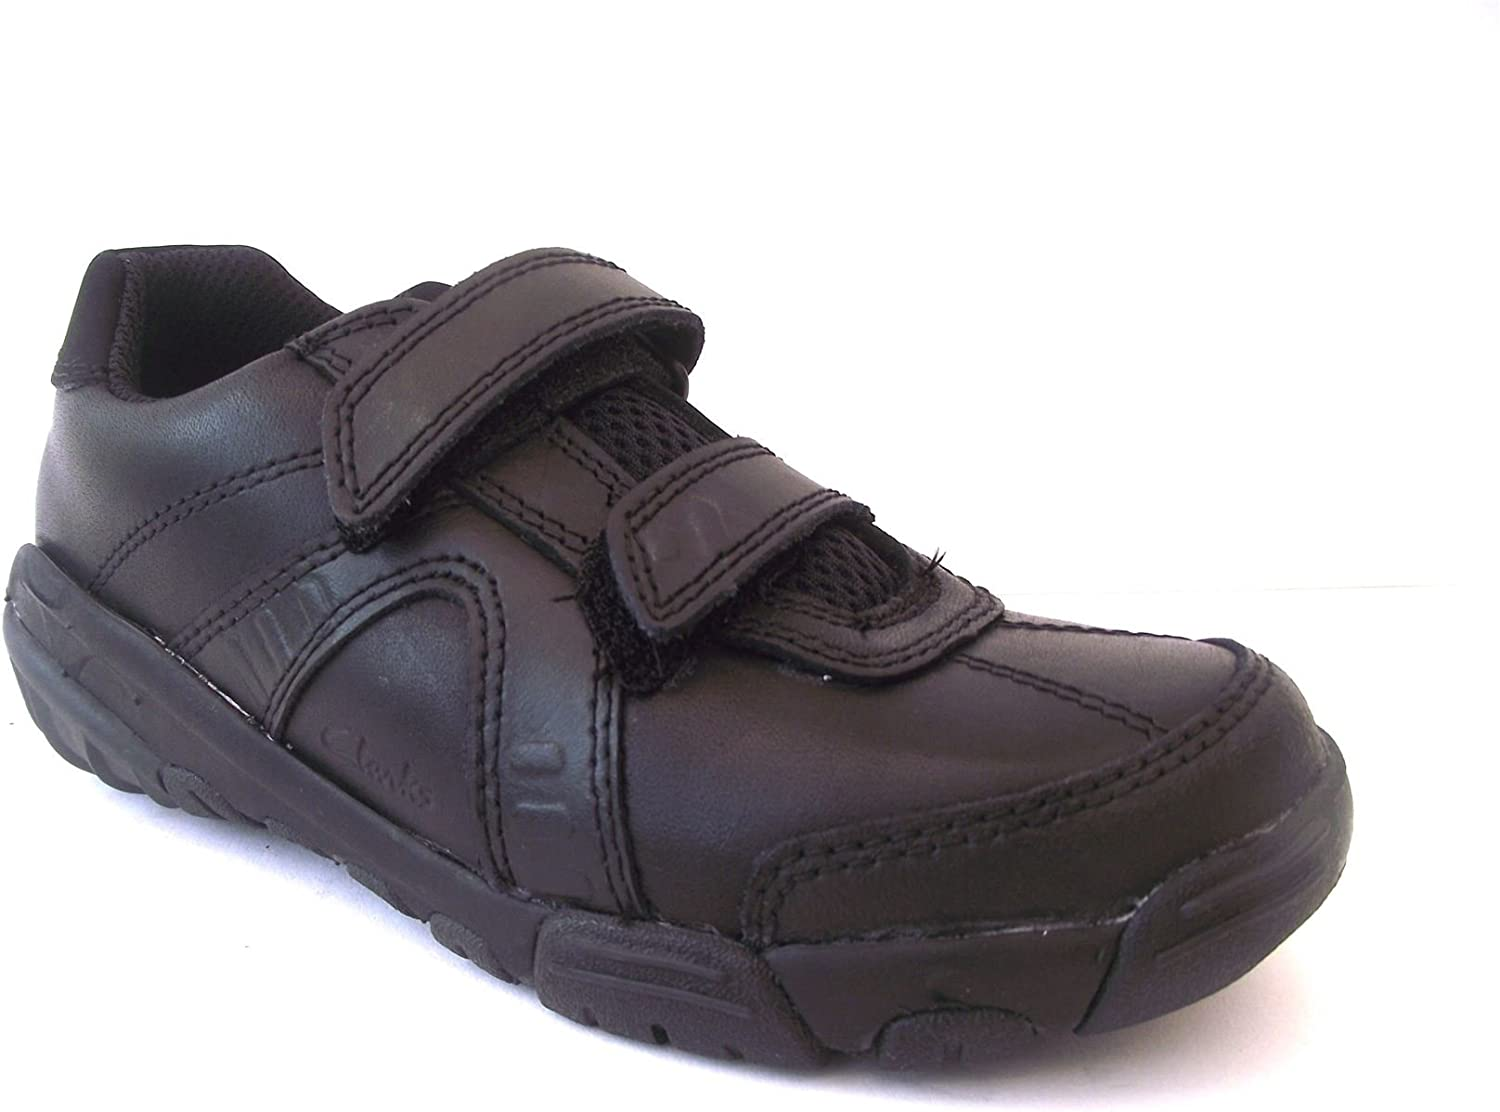 Leather Galaxyspin School Shoes 12F